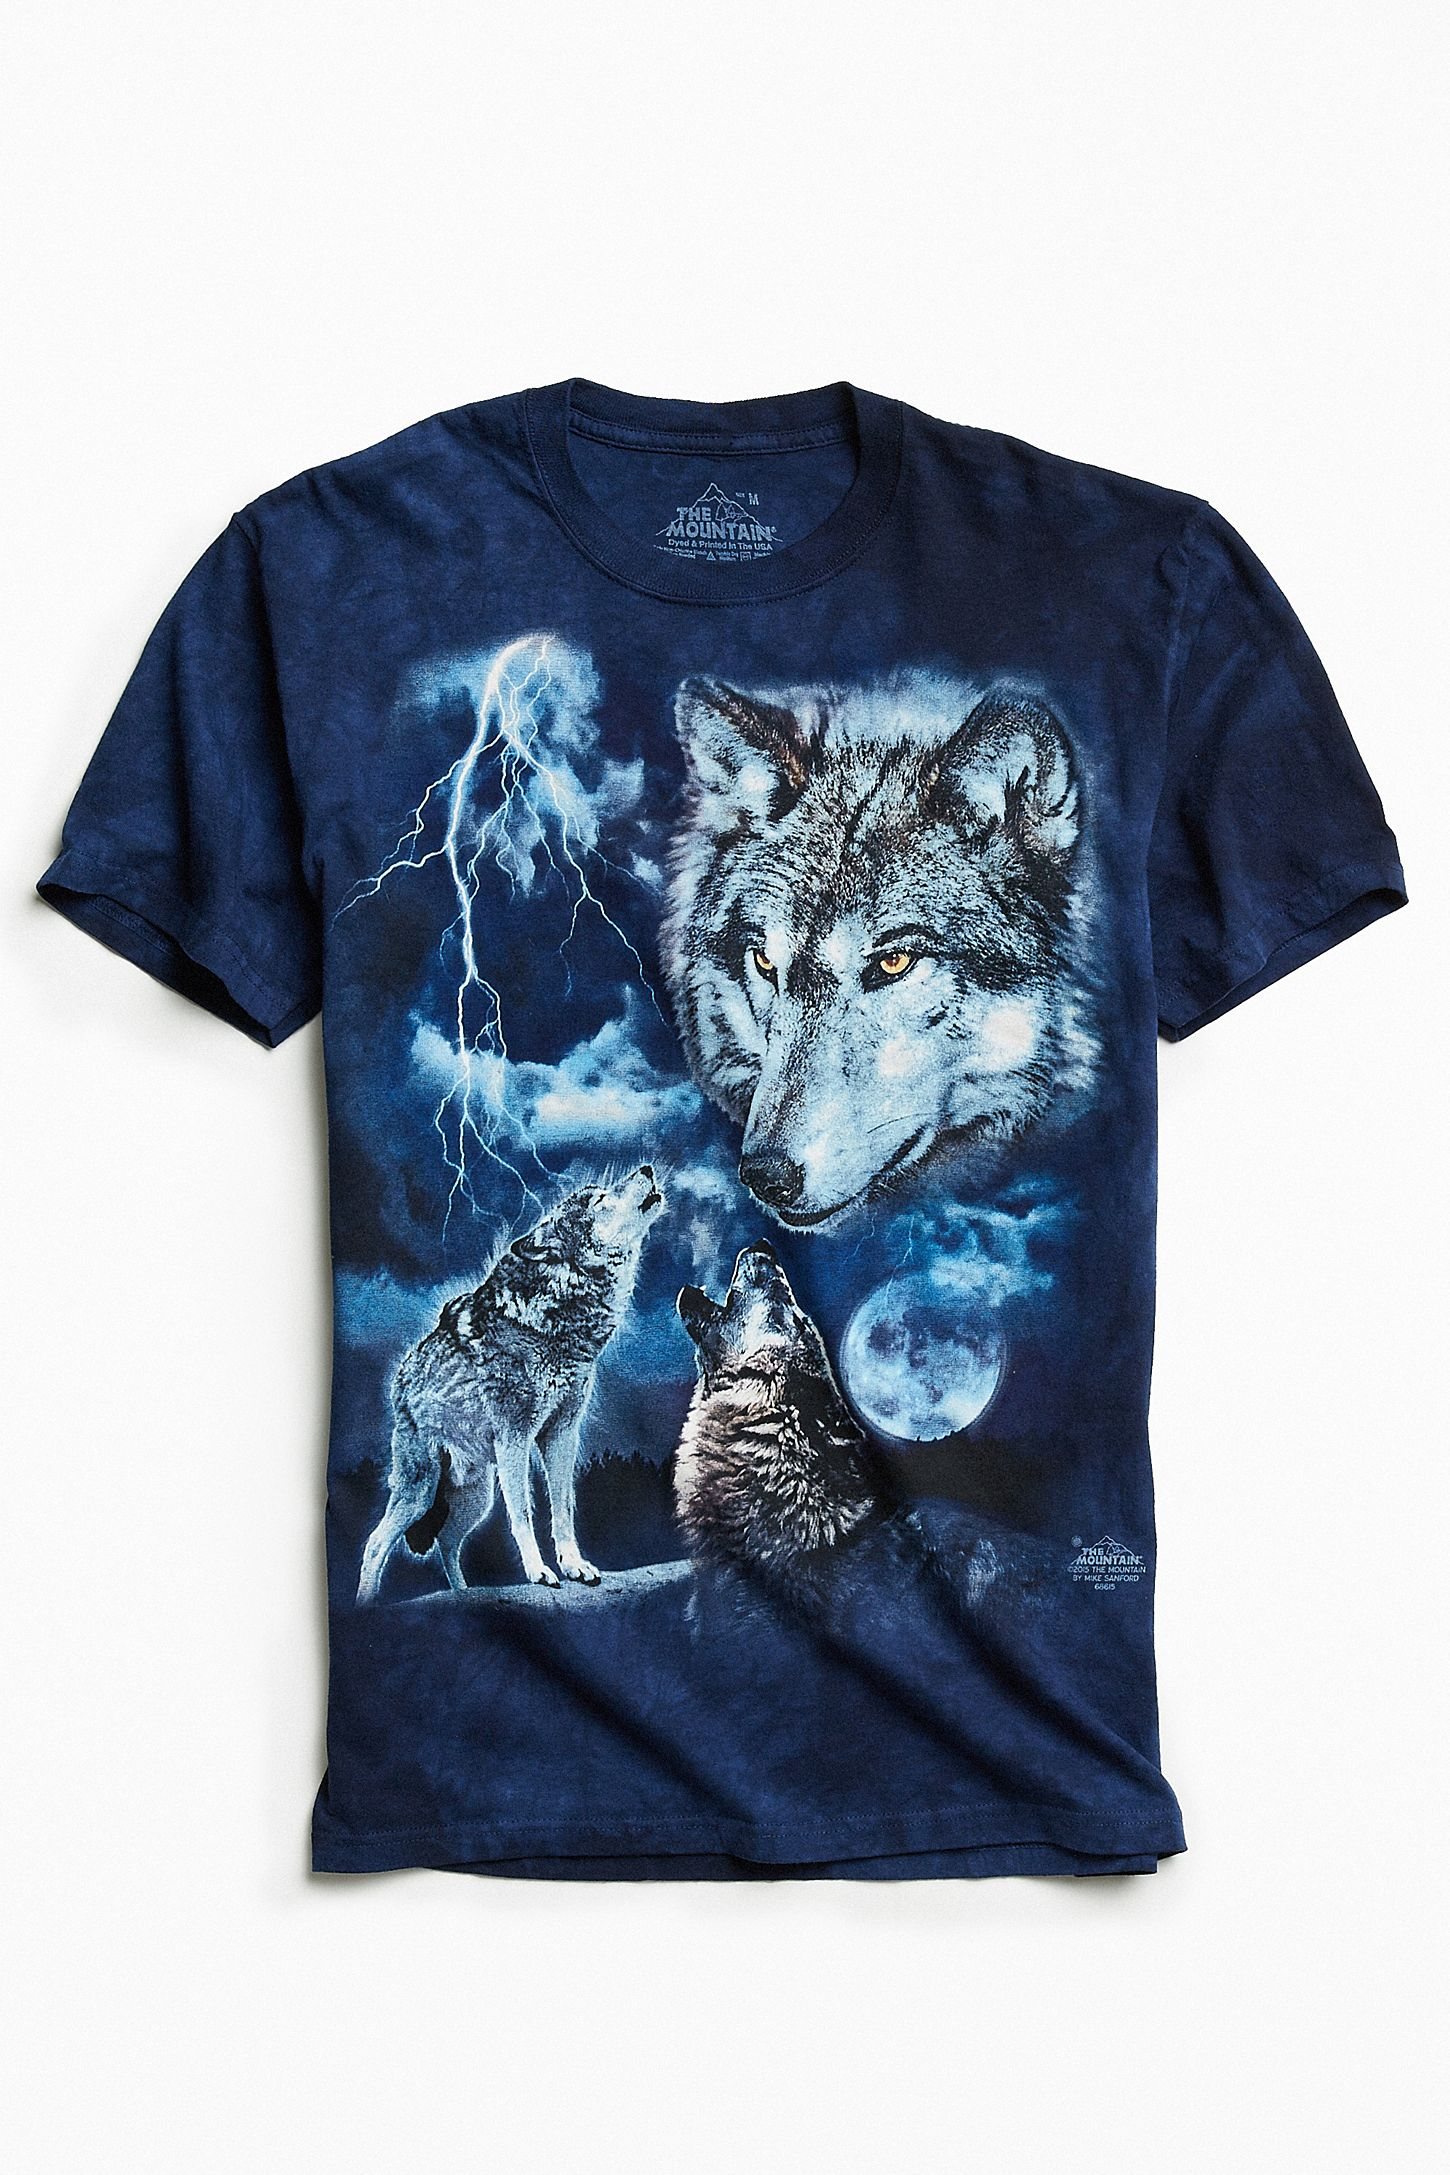 b2c827224143 Tie Dye Wolf Tee Urban Outers. Tie Dye Pint T Shirt By The Mountain. T  Shirts With Tie Dye Designs Sotshirt. Zoom Telio Stretch Bamboo Rayon  Jersey Knit ...